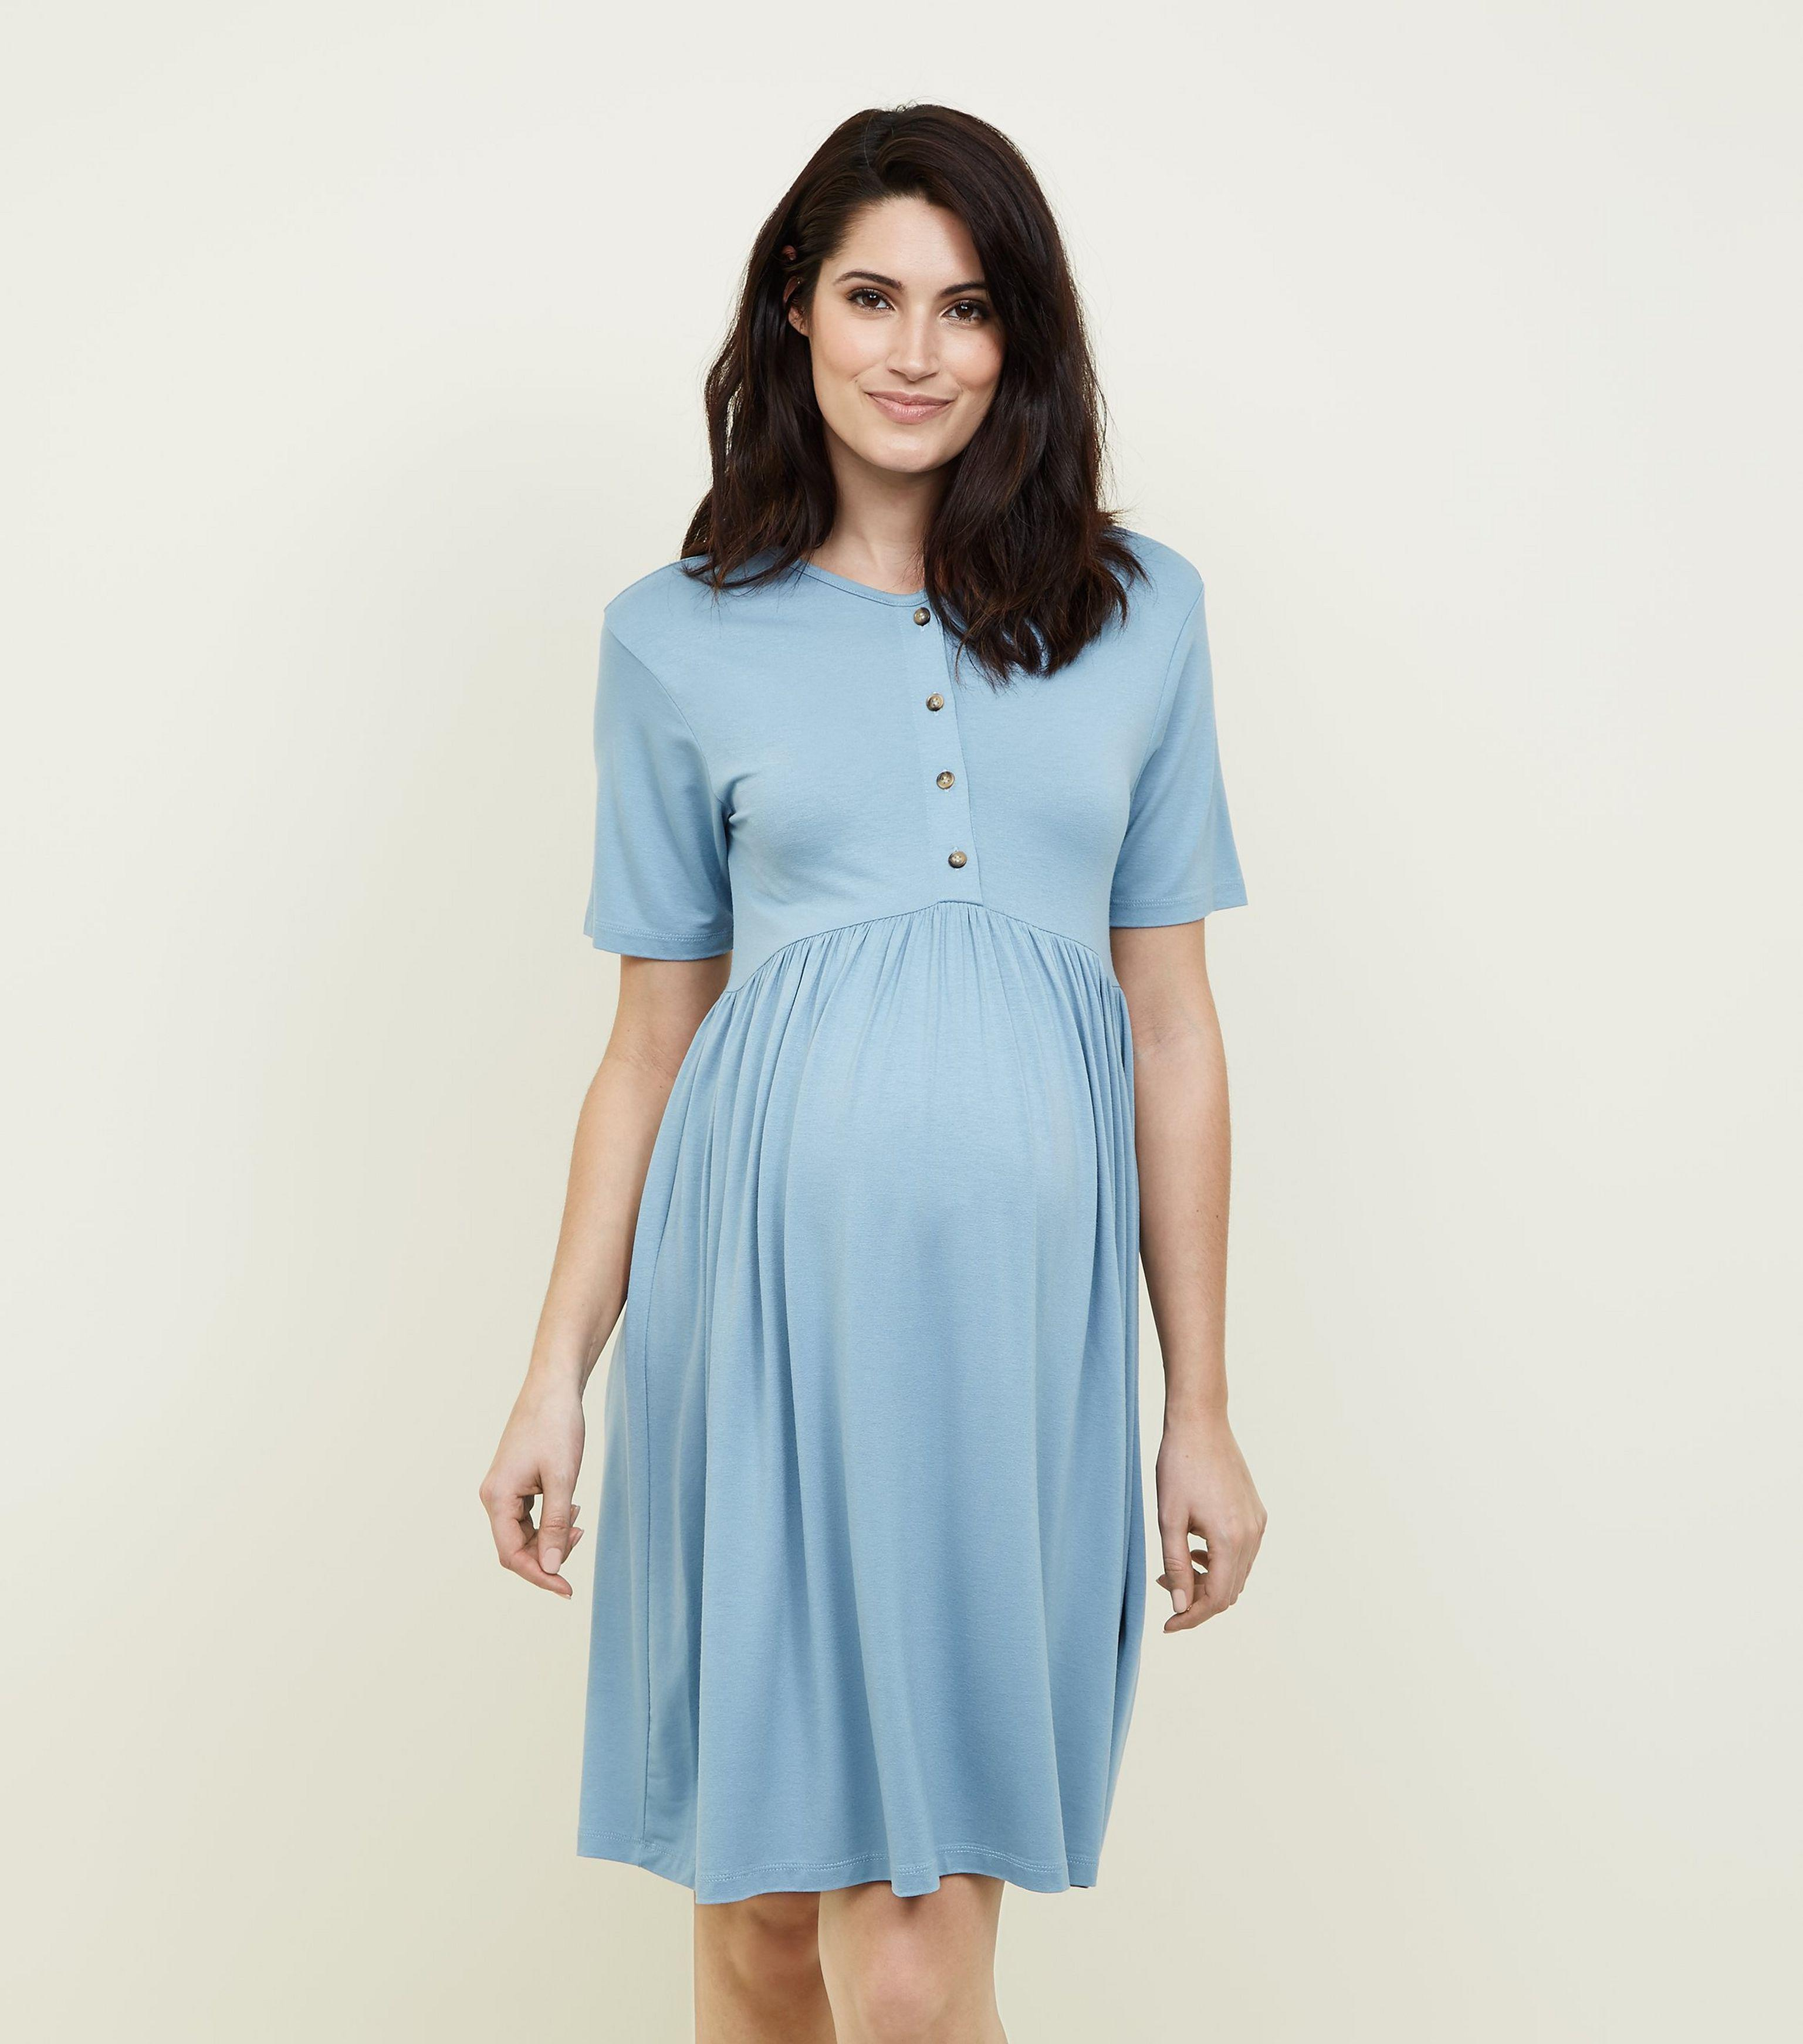 New Look Maternity Blue Button Front Nursing Smock Dress in Blue - Lyst